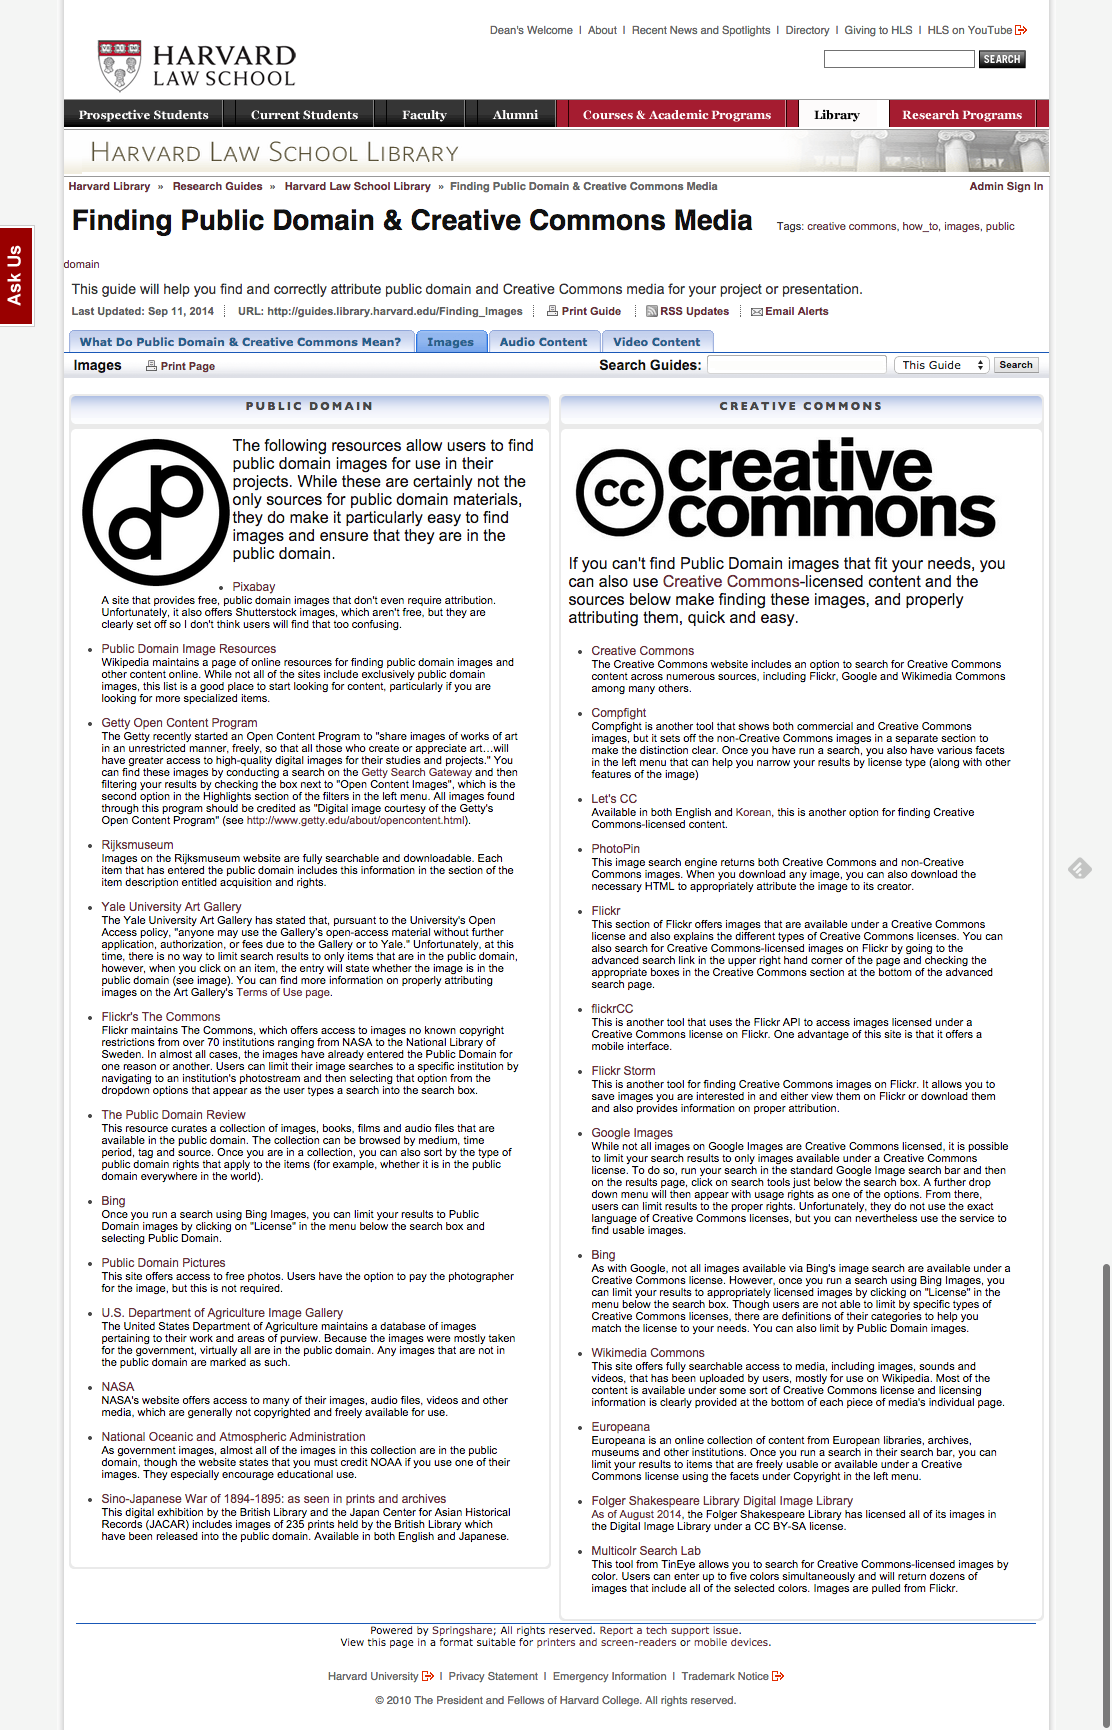 Finding Public Domain & Creative Commons Media by Harvard Law School Library.  URL: http://guides.library.harvard.edu/Finding_Images